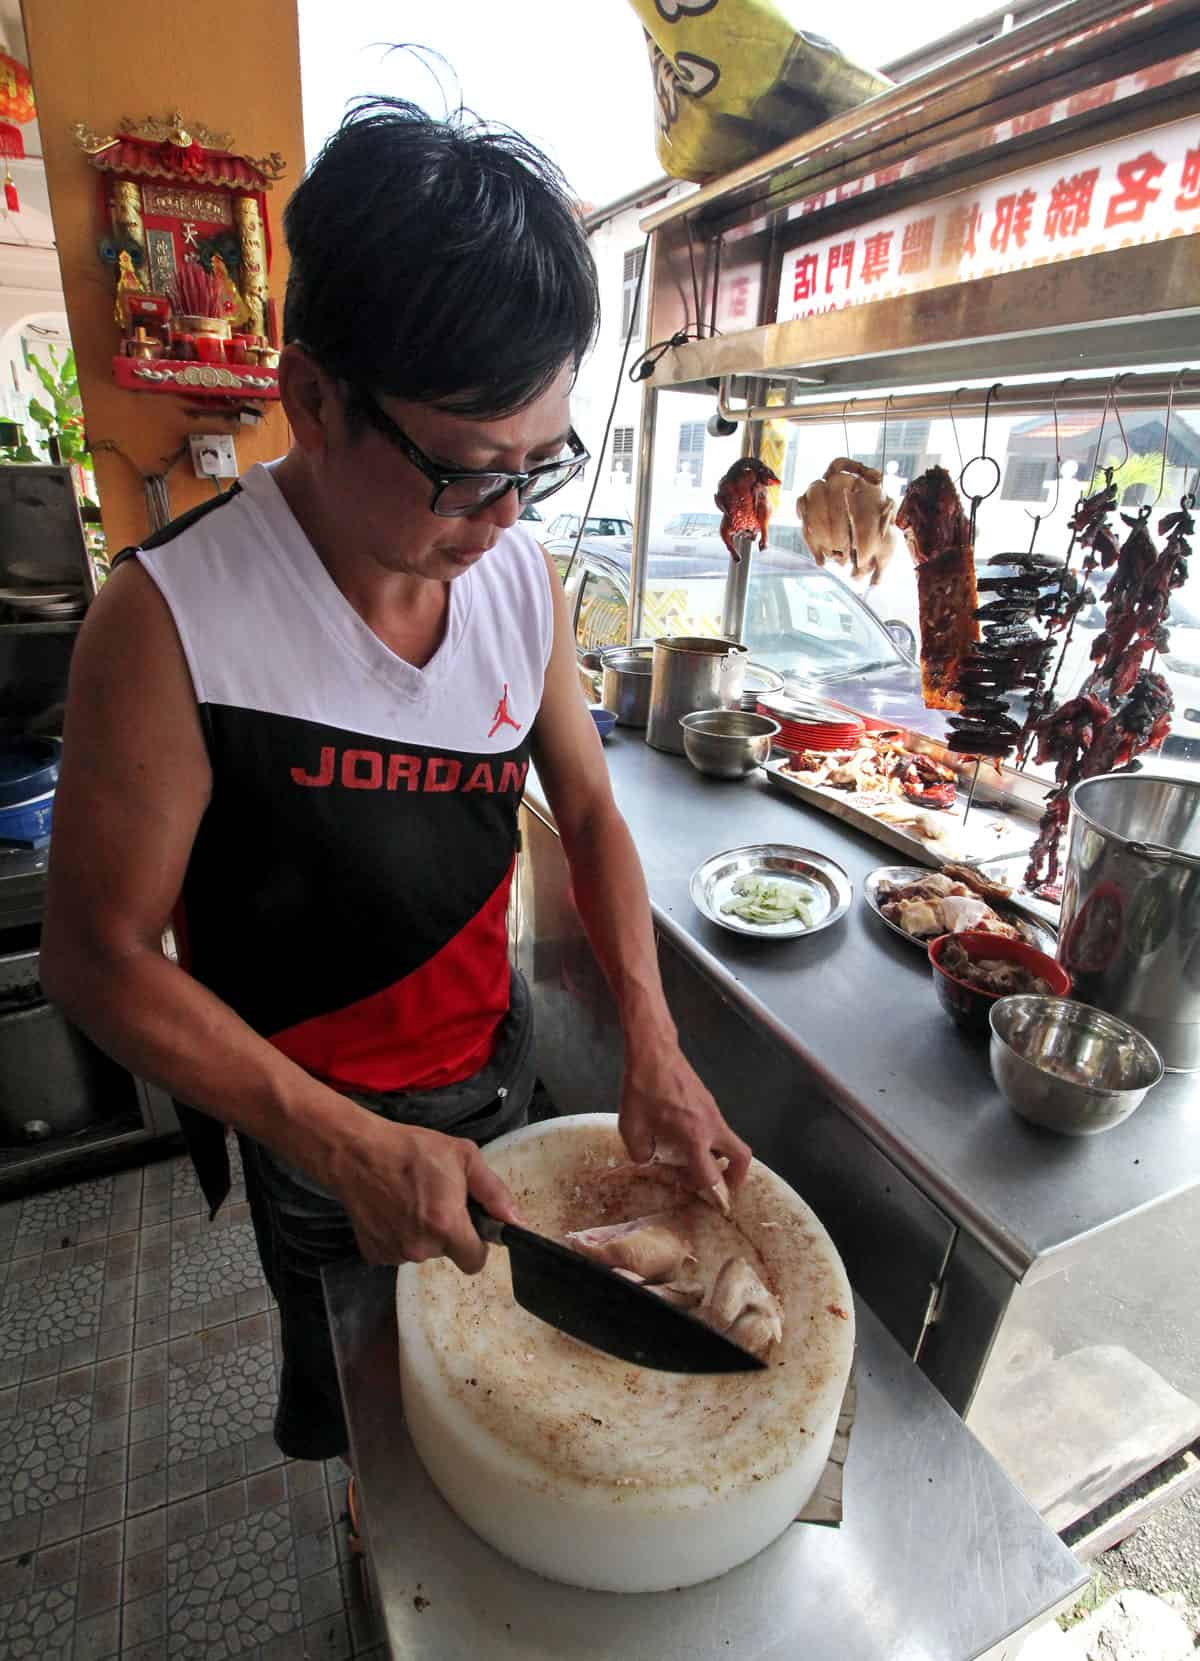 Chopping chicken at First Famous Federal Restaurant in Penang, Malaysia